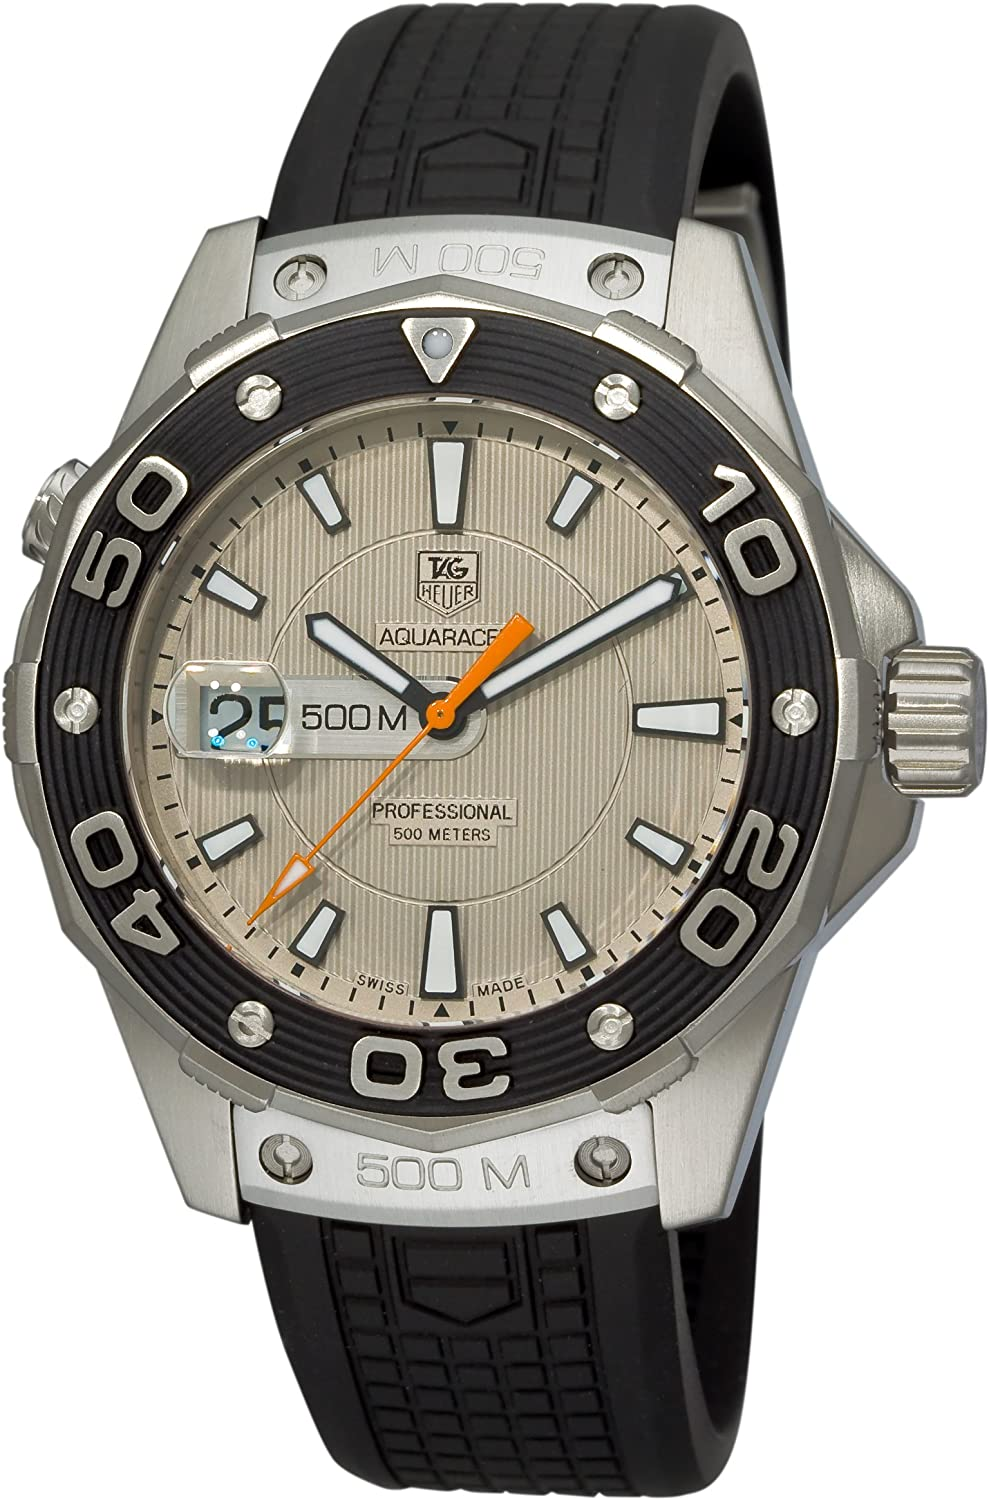 TAG Heuer Men's WAJ1111.FT6015 Aquaracer 500 M Watch